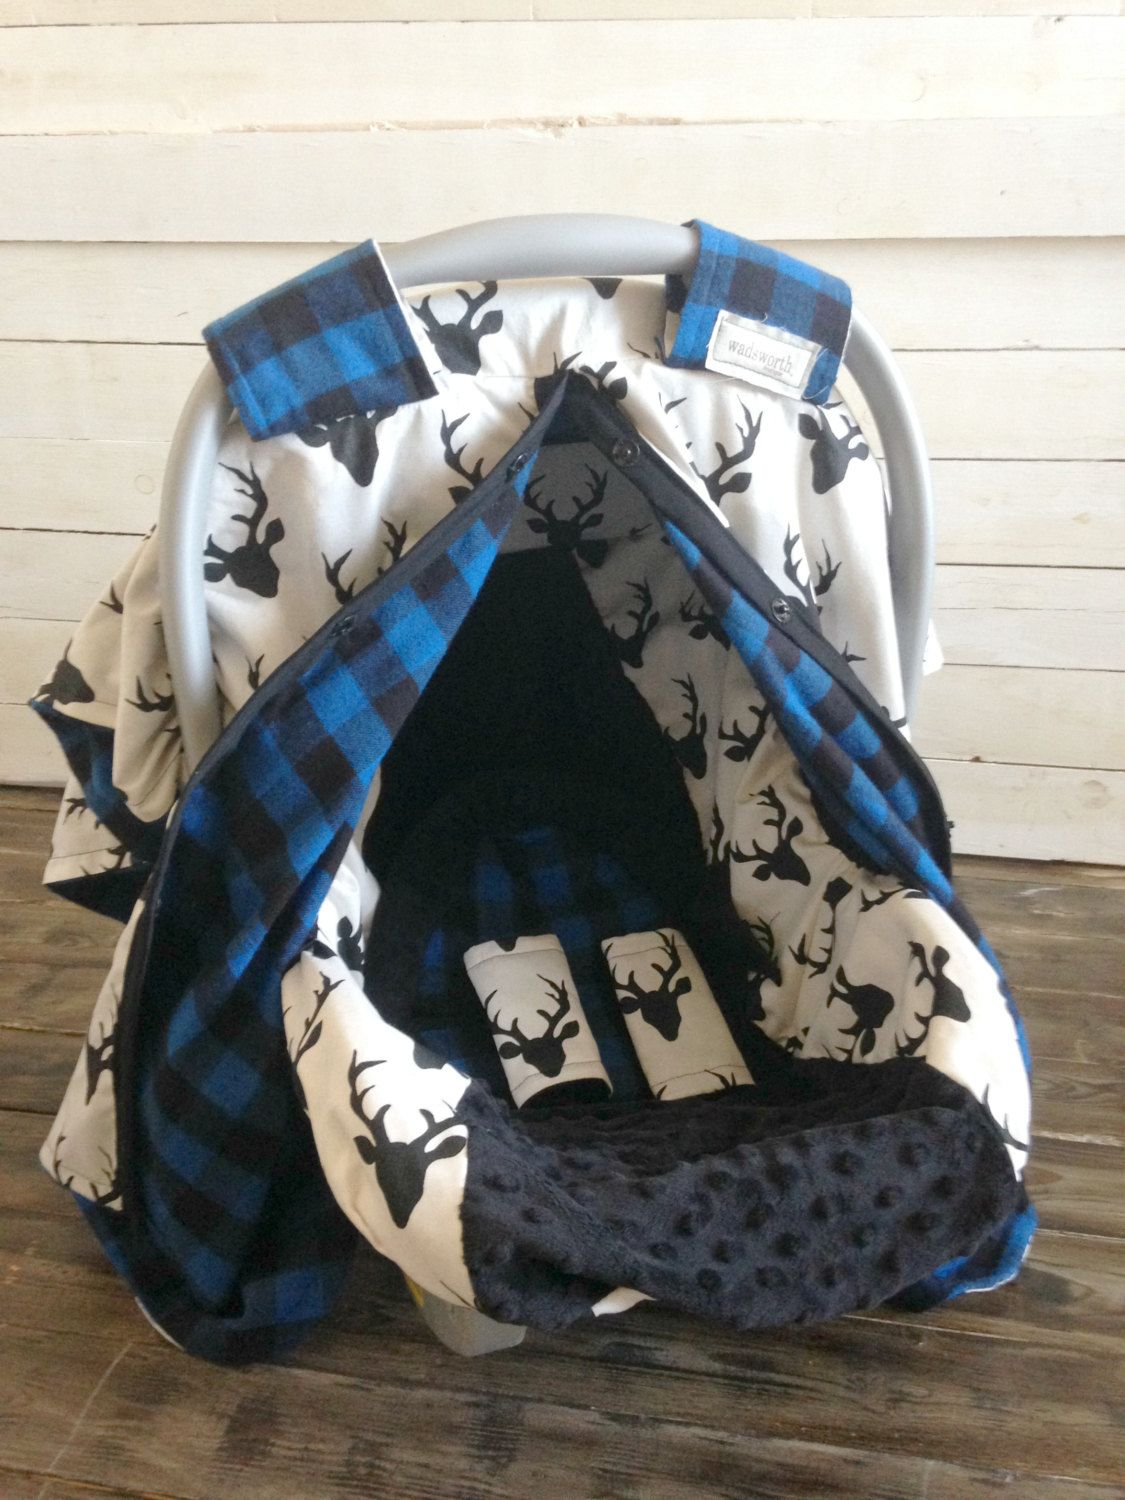 POPULAR ITEM Adorable Deer Stag Hunting Collection For Baby Boy Or Girl Give Yourself Your Loved One The Best Gift Ever